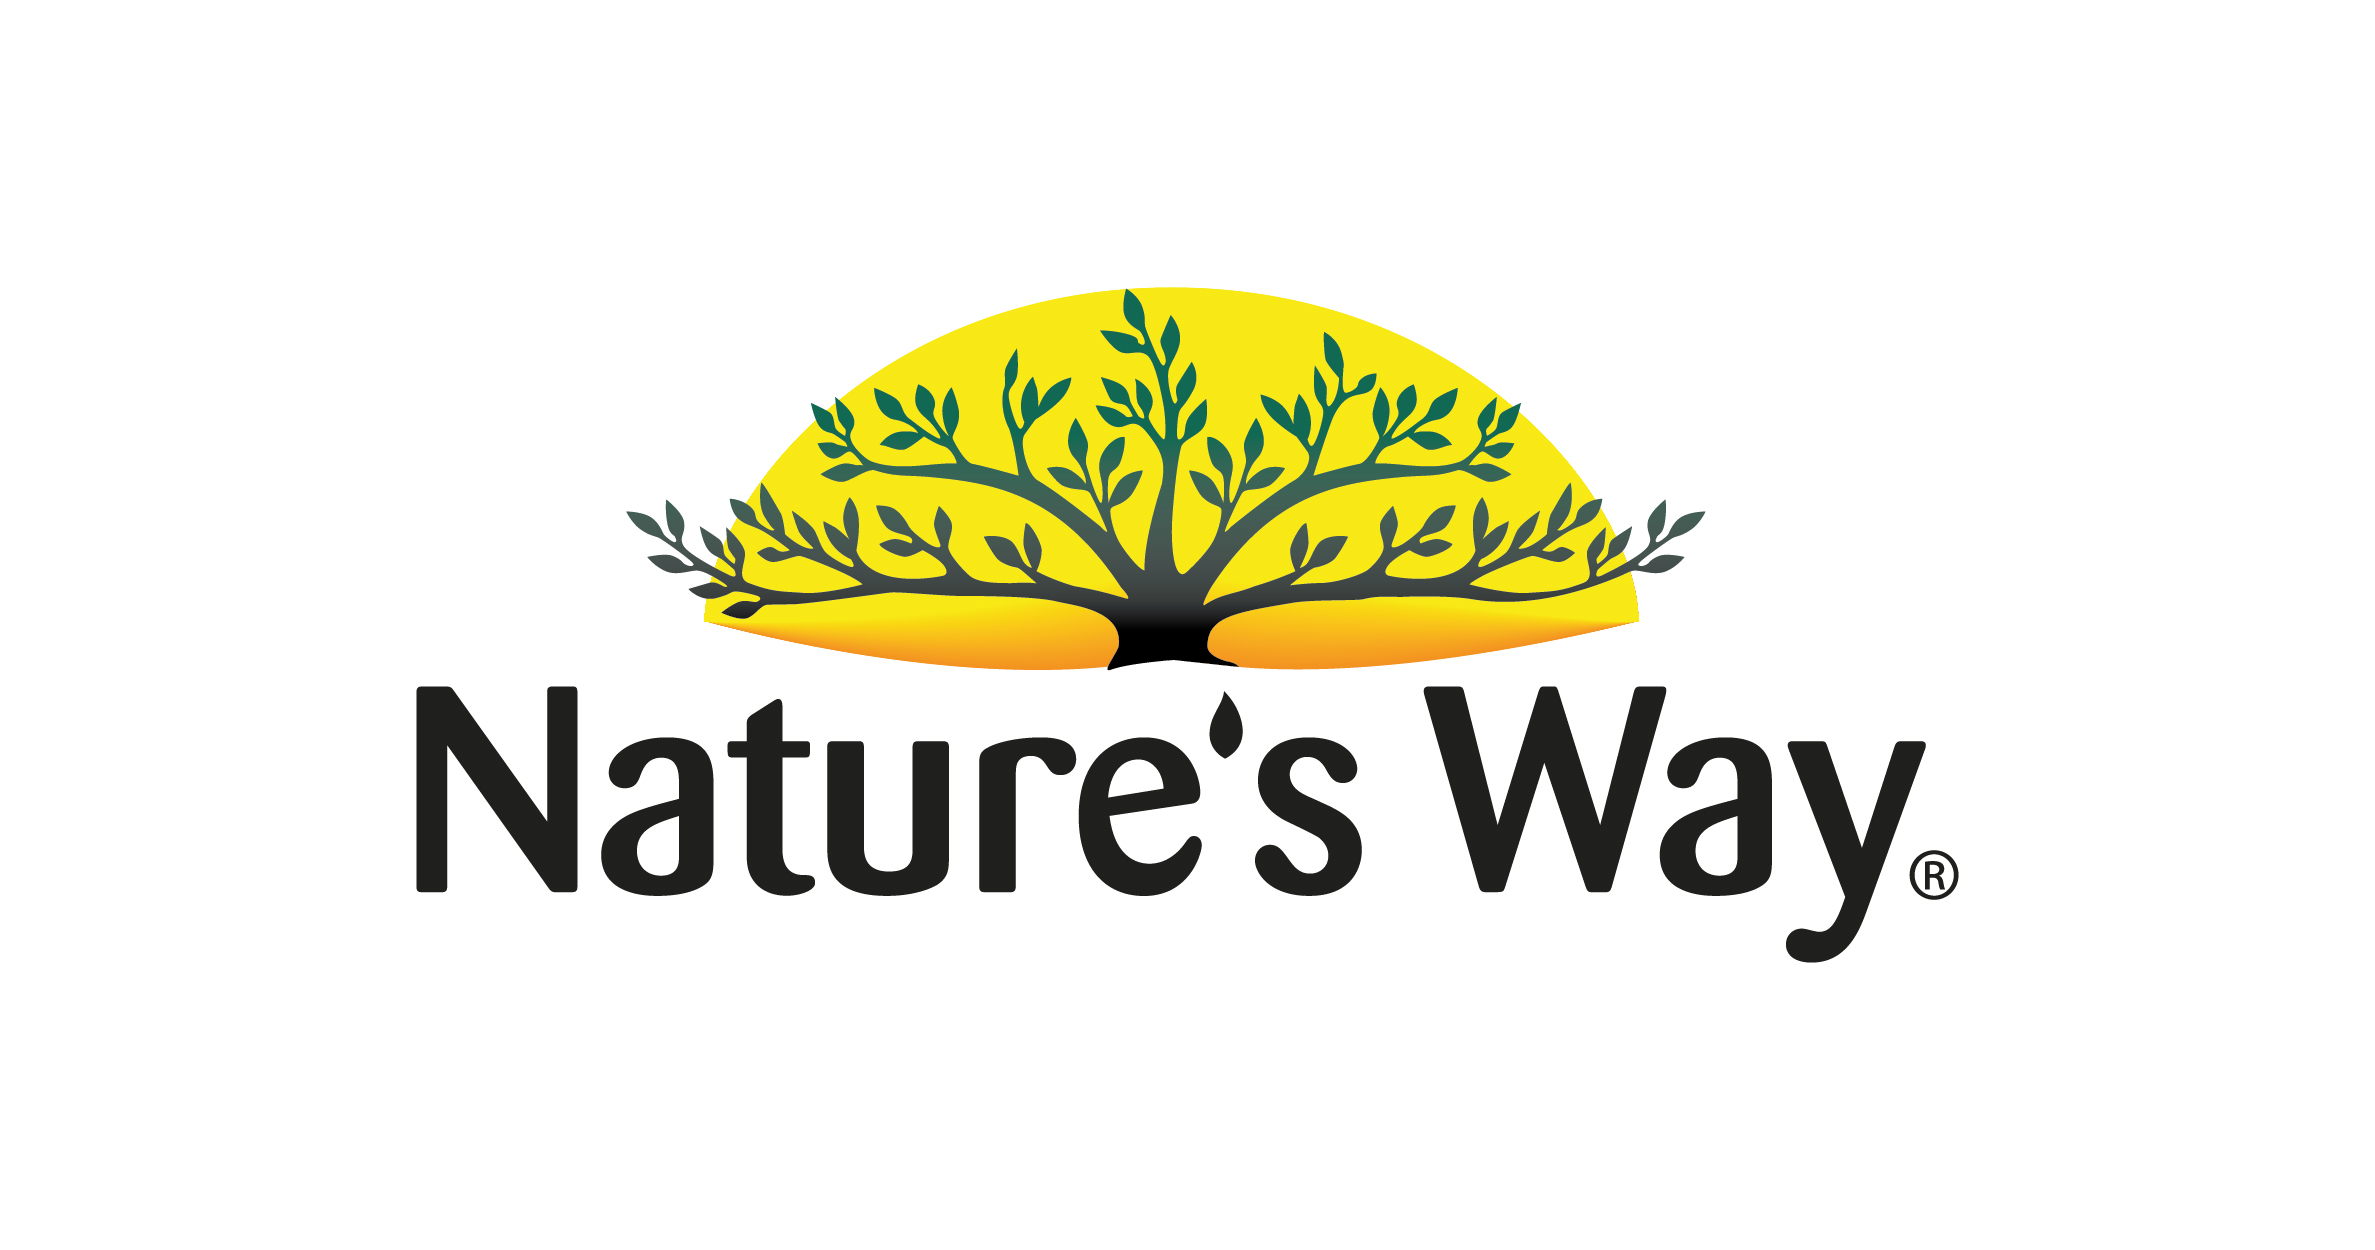 Alpro Pharmacy Oneclick Natures Way